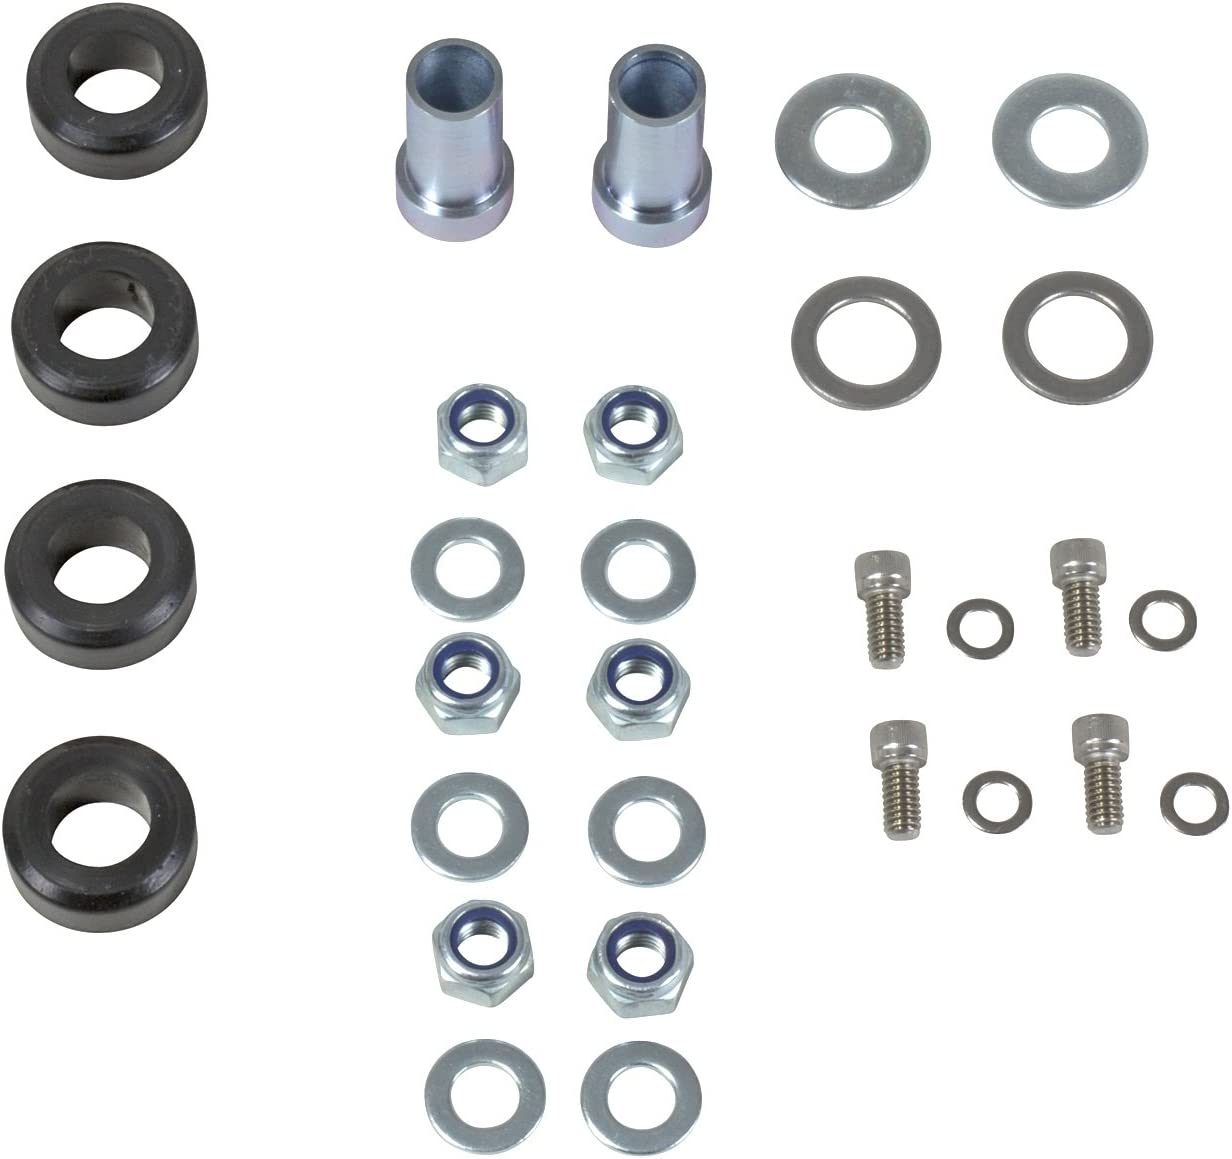 Incl Bracket//Flange//Nuts//Washers//Bushings Alignment Caster//Camber Hardware Kit BBK Performance Parts 25272 Alignment Caster//Camber Hardware Kit For Caster Camber Plates PN 2527